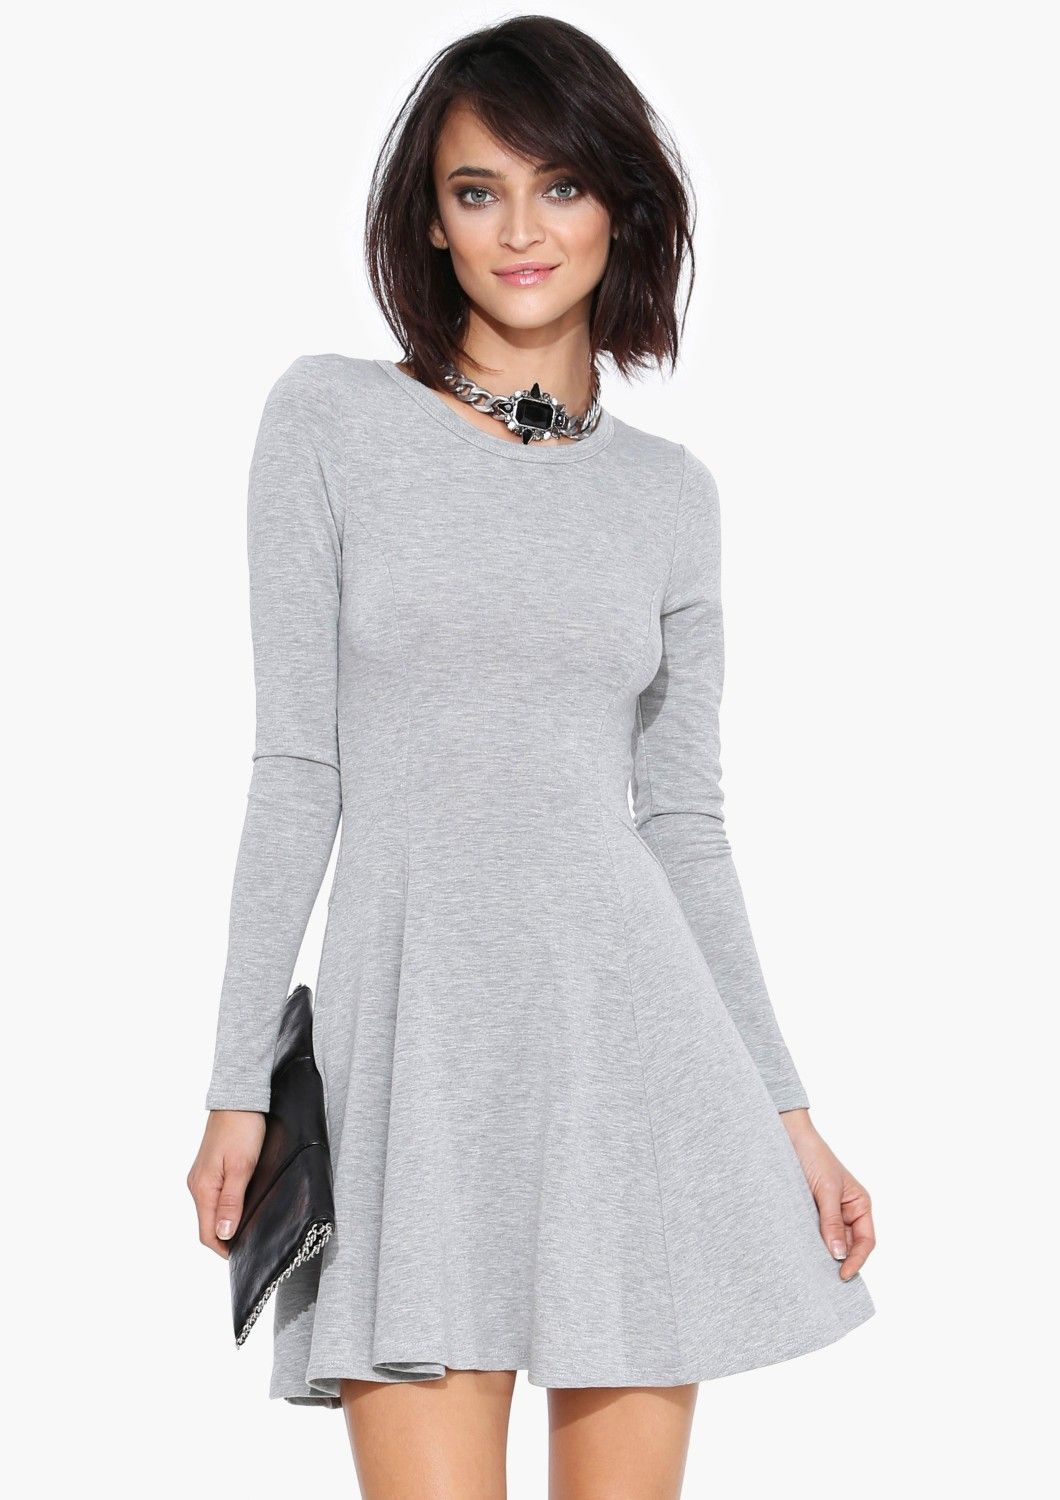 A universally flattering dress that can be styled casual or dressy ...